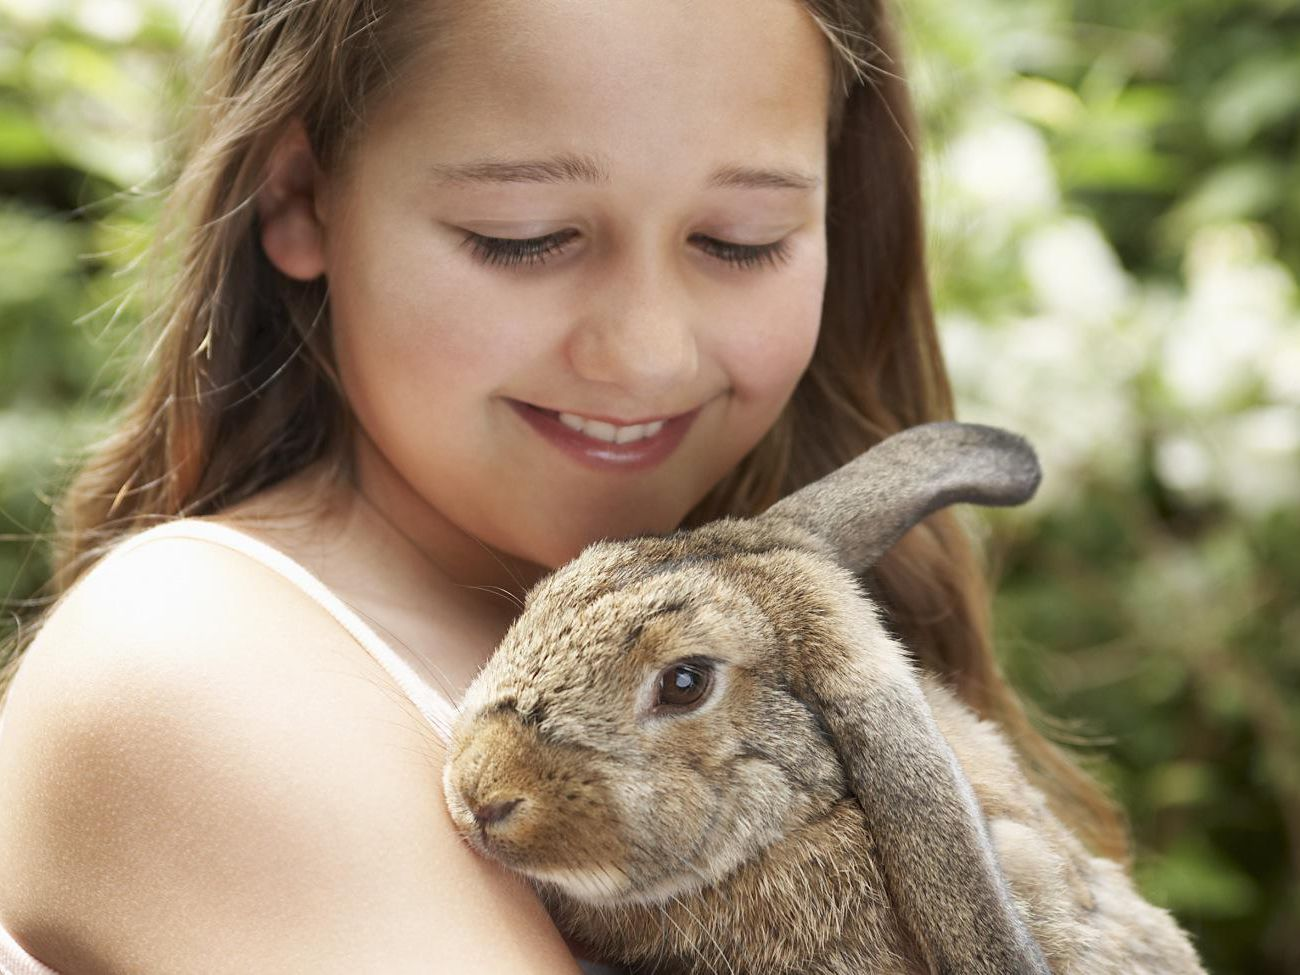 Keeping And Caring For Rabbits As Pets